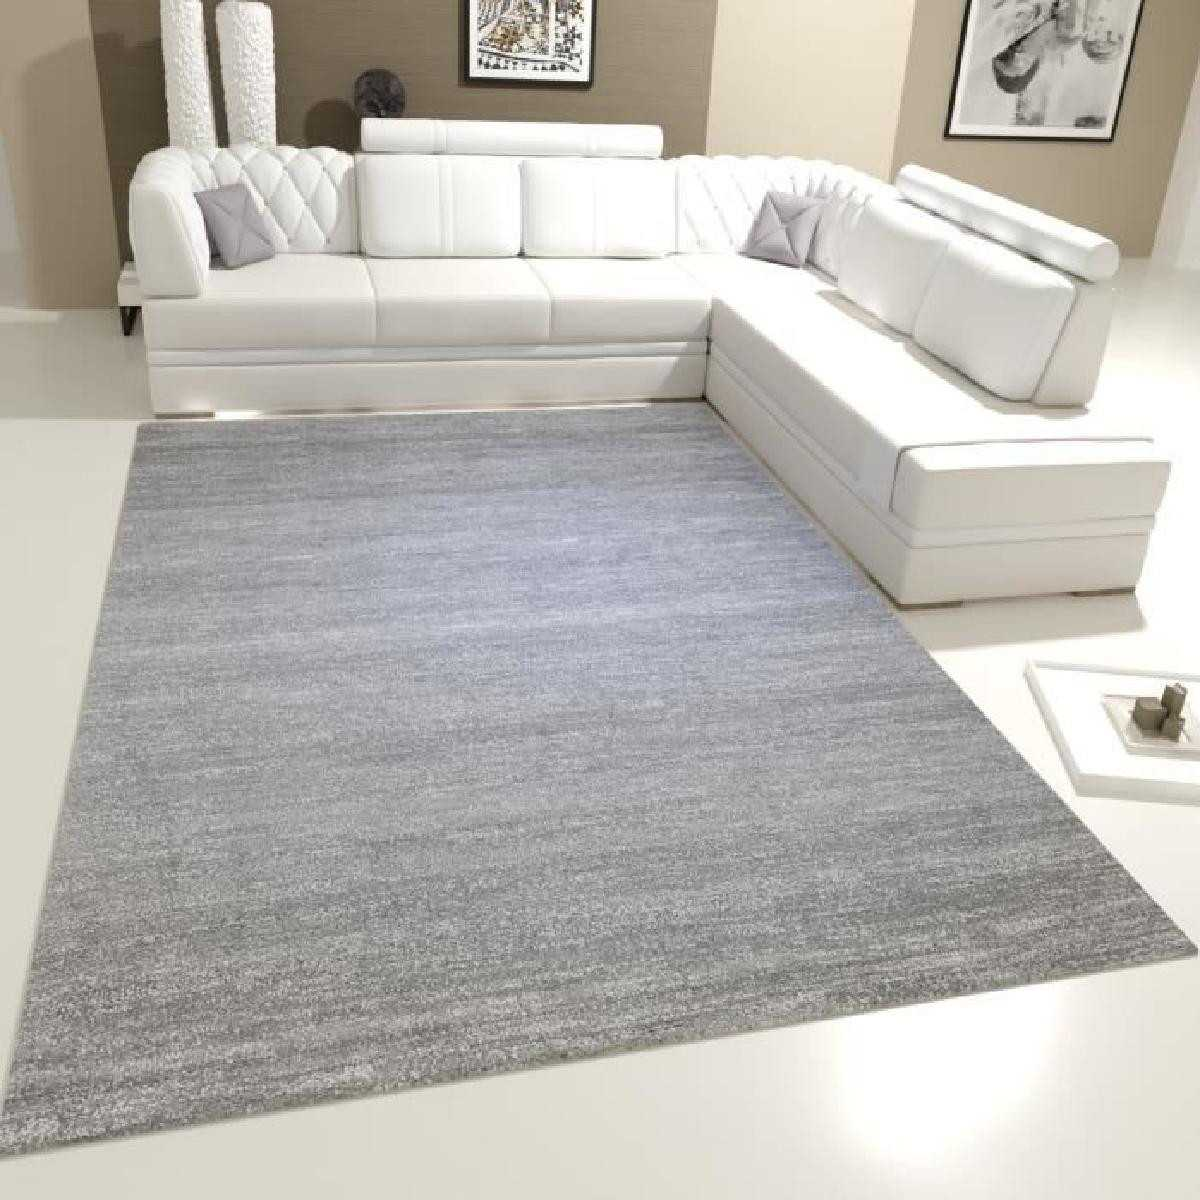 tapis blanc pas cher id es de d coration int rieure french decor. Black Bedroom Furniture Sets. Home Design Ideas